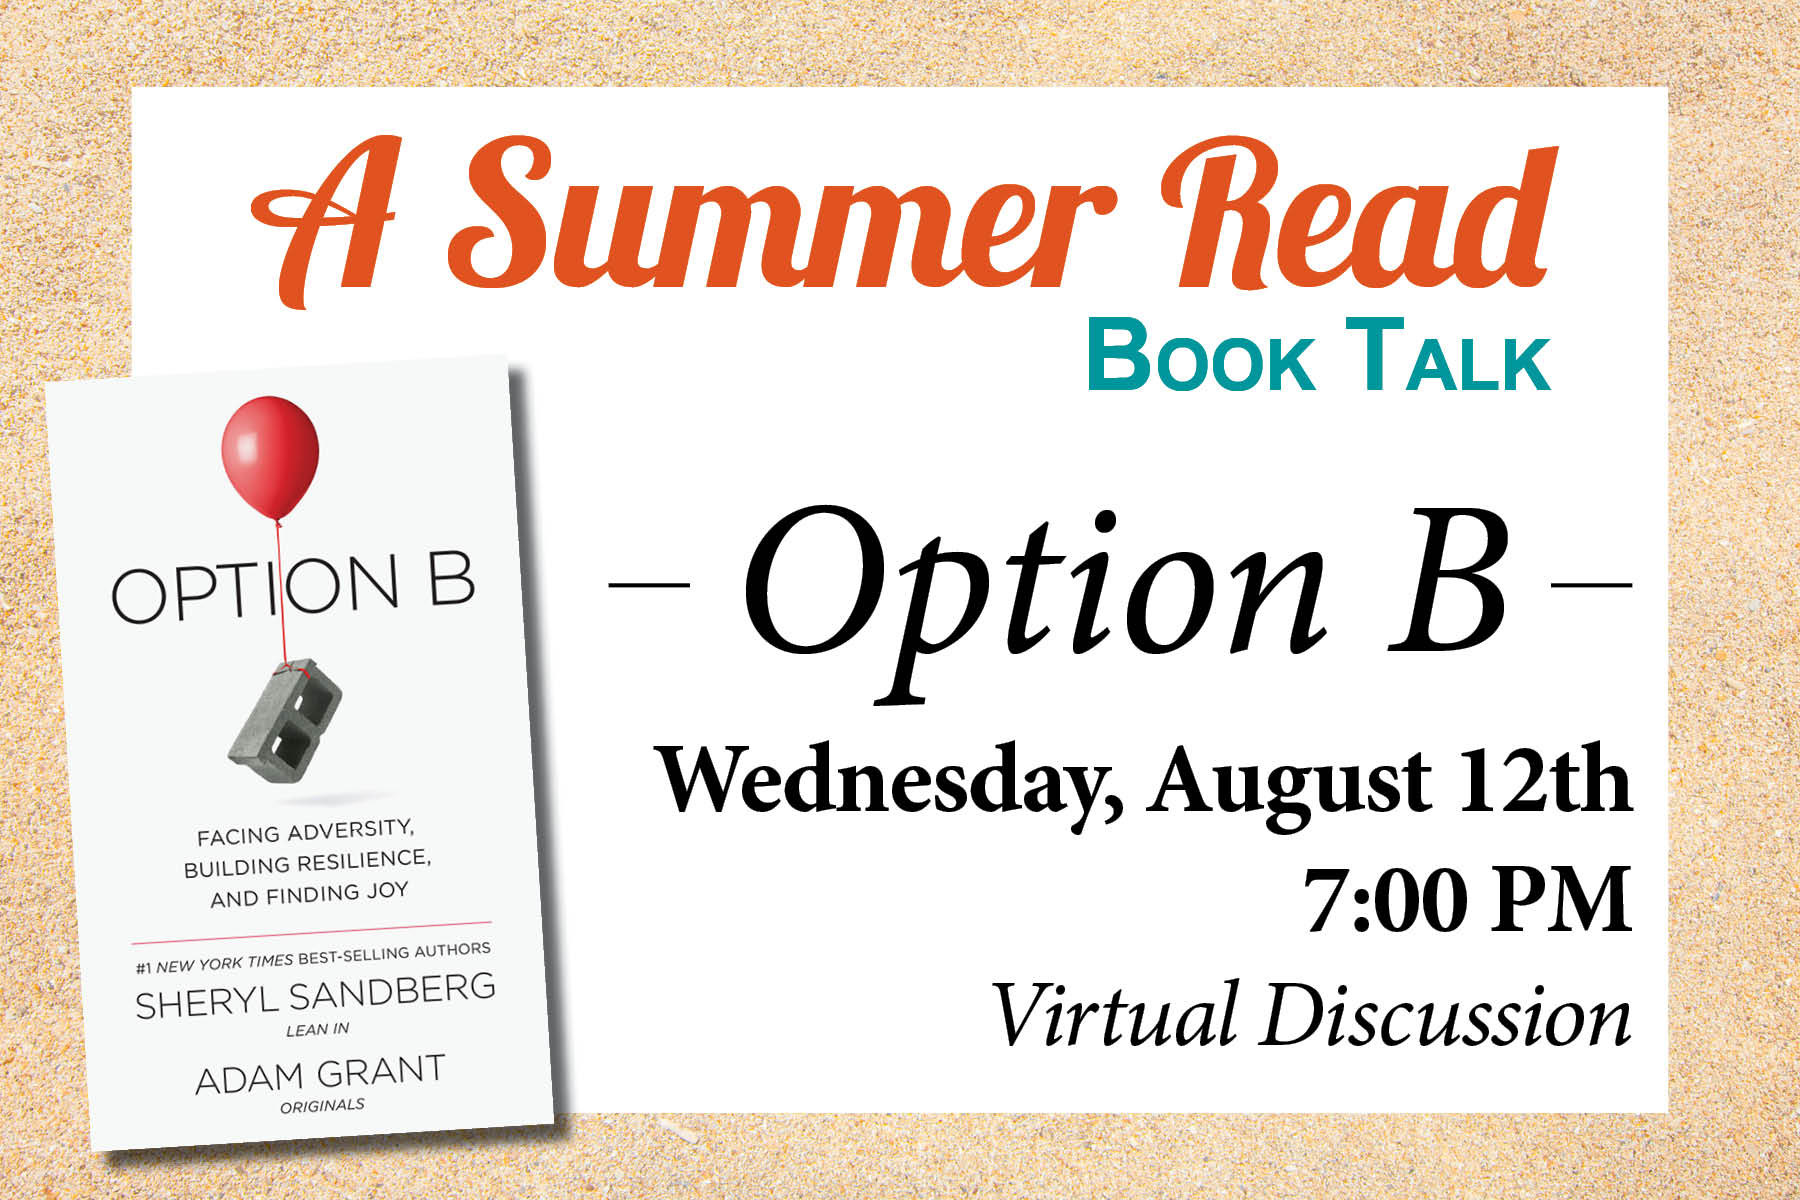 Option B Summer Read Discussion